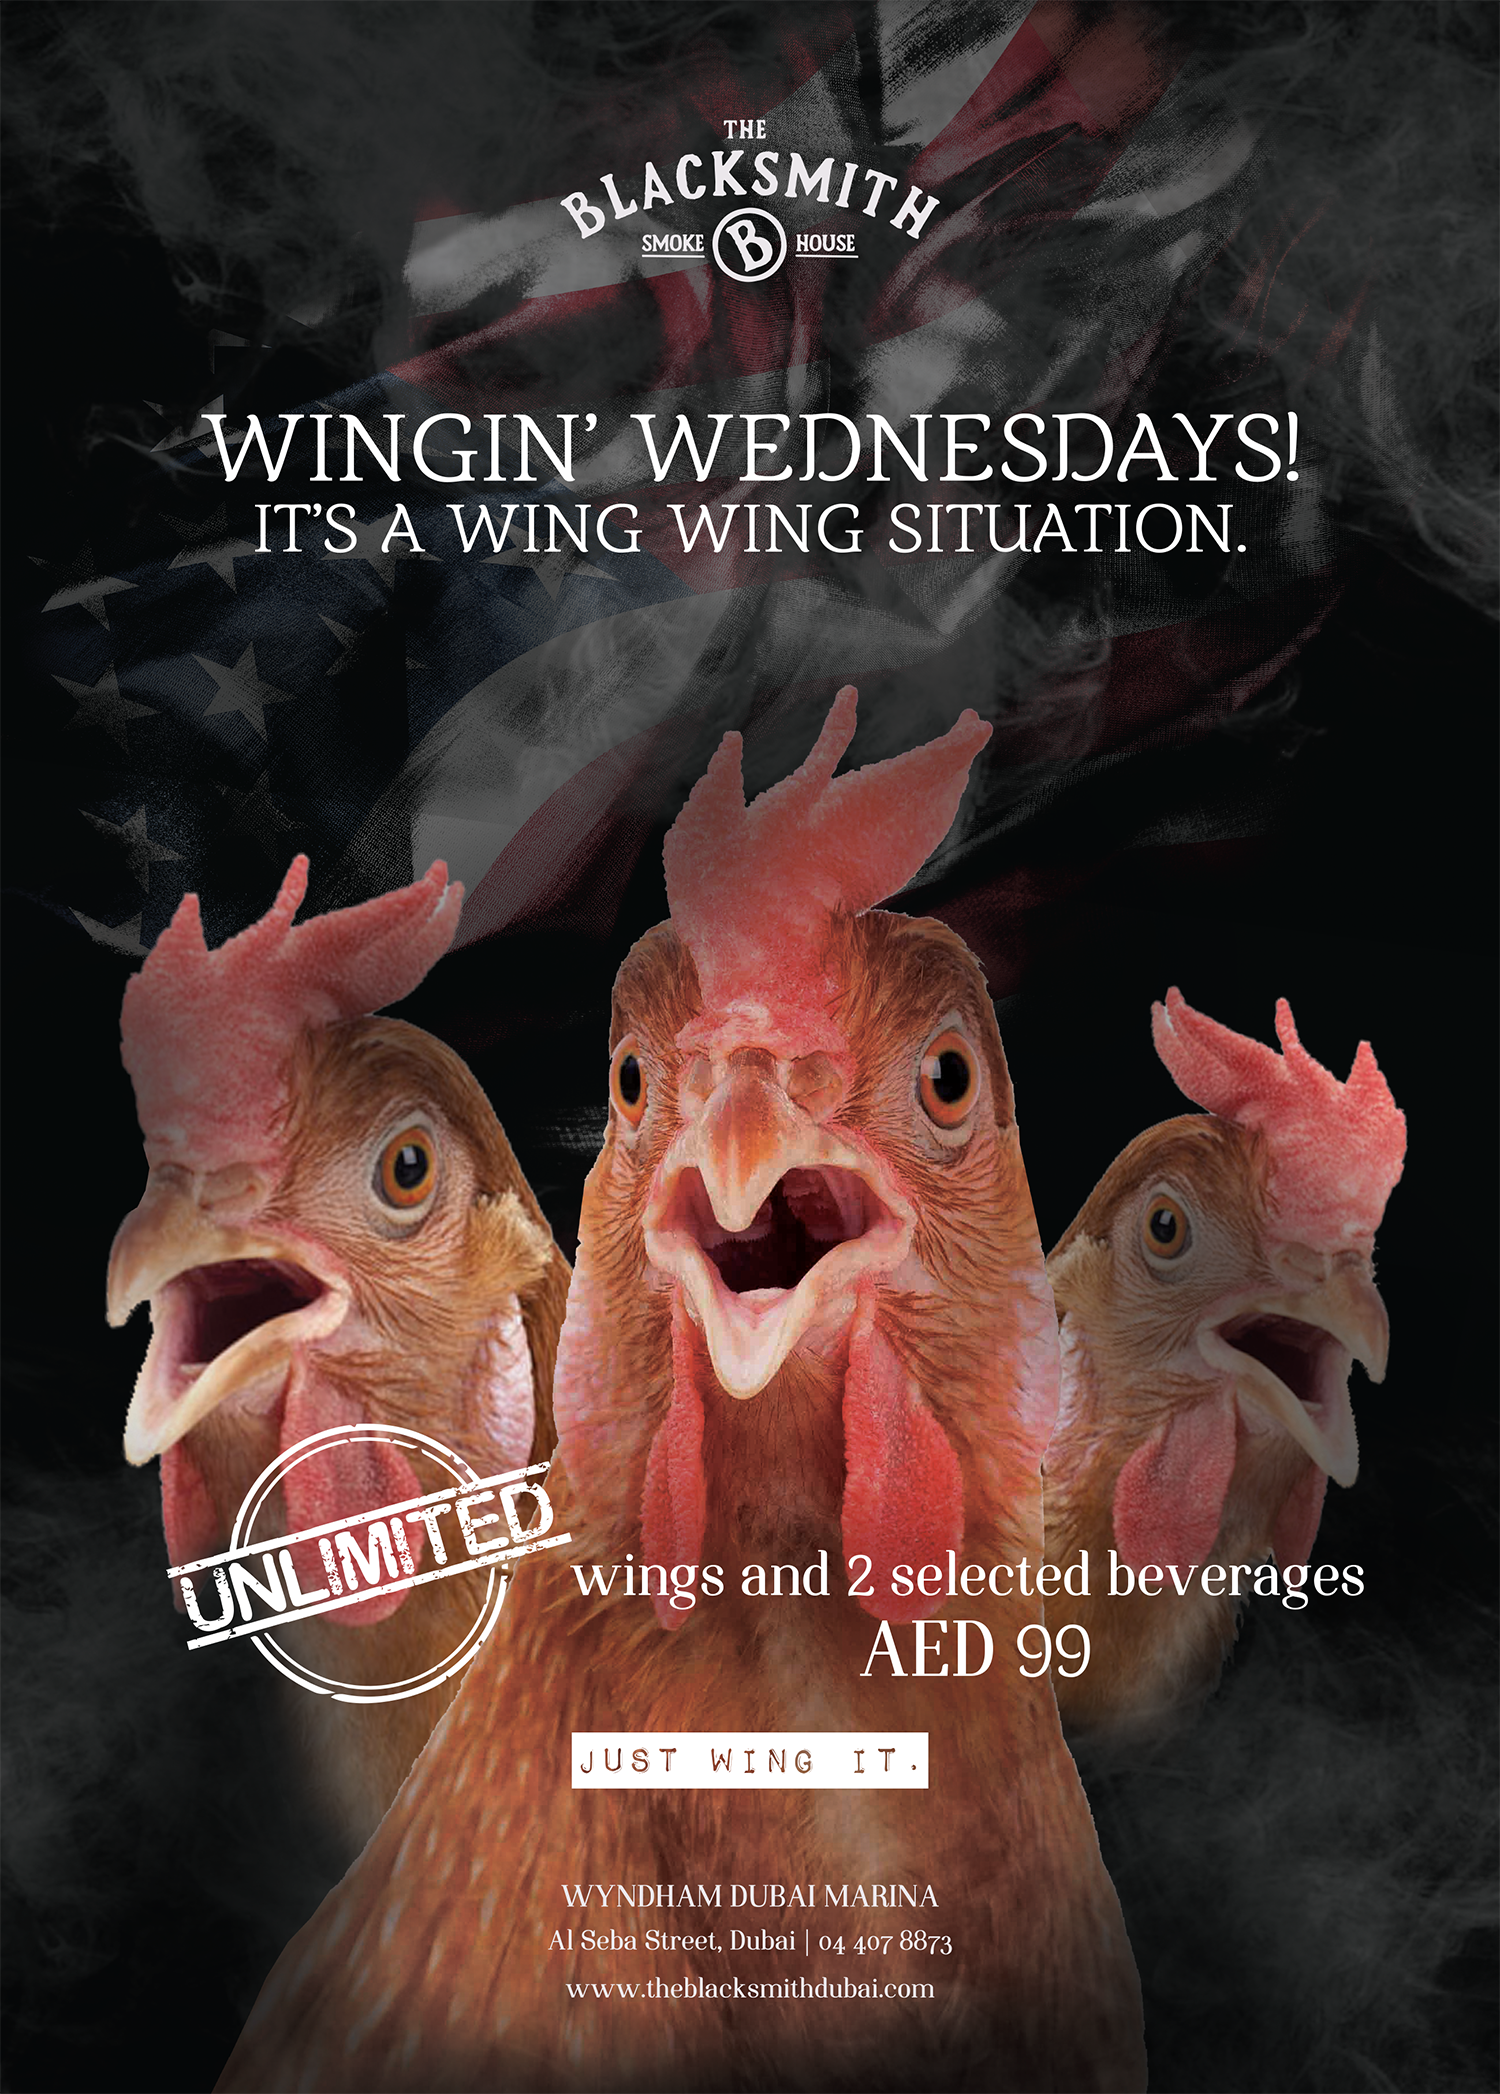 2019_06_11_TBS_WINGIN_WEDNESDAYS_A4.png